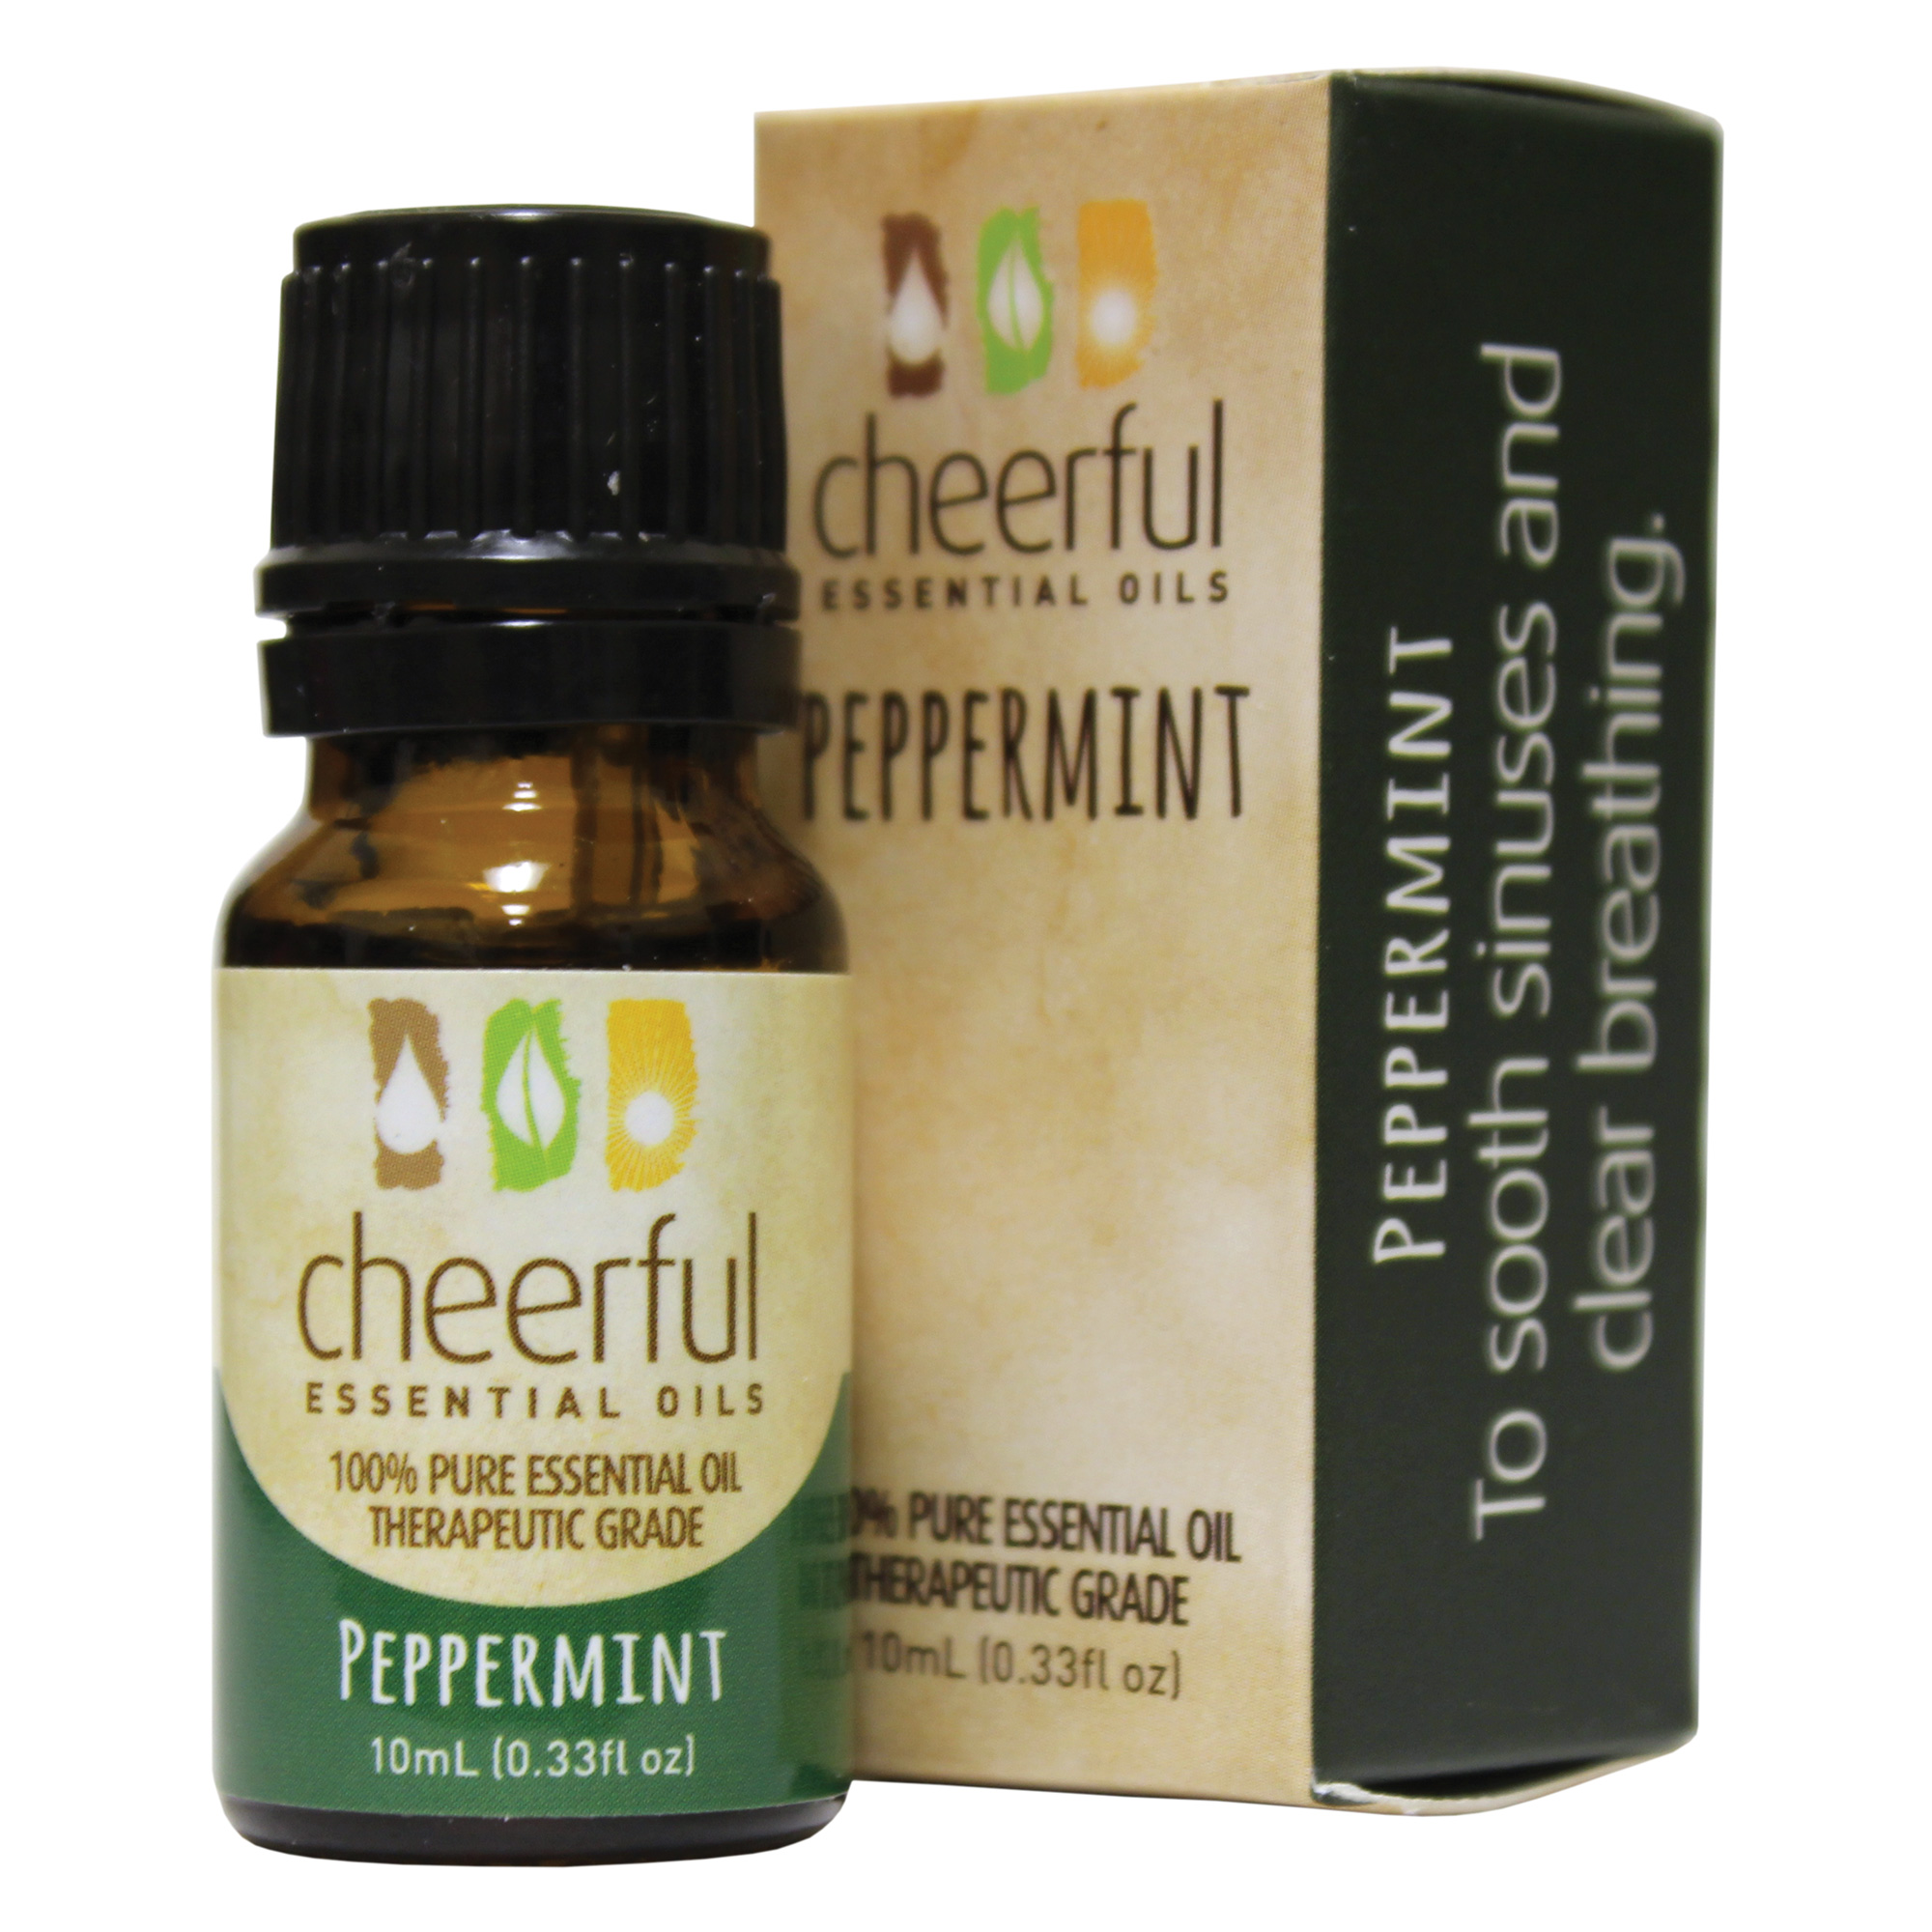 PEPPERMINT ESSENTIAL OIL 10 ML UPC# 674623018119